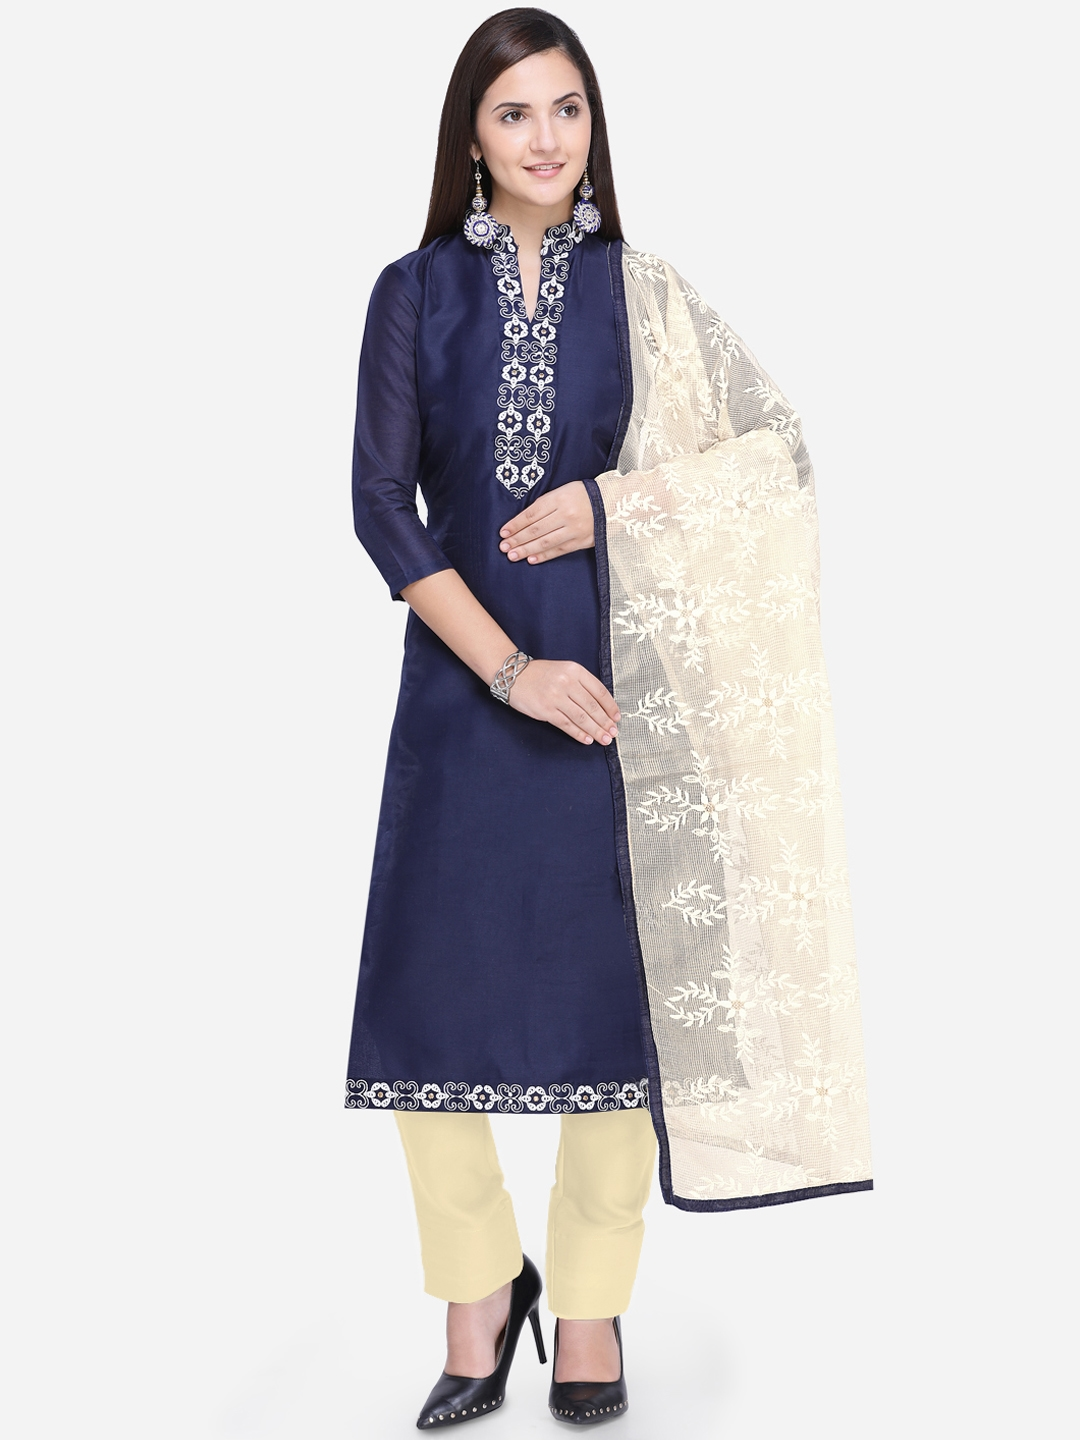 Saree mall Navy Blue   Cream-Coloured Cotton Blend Semi-Stitched Dress  Material b8dd57eda